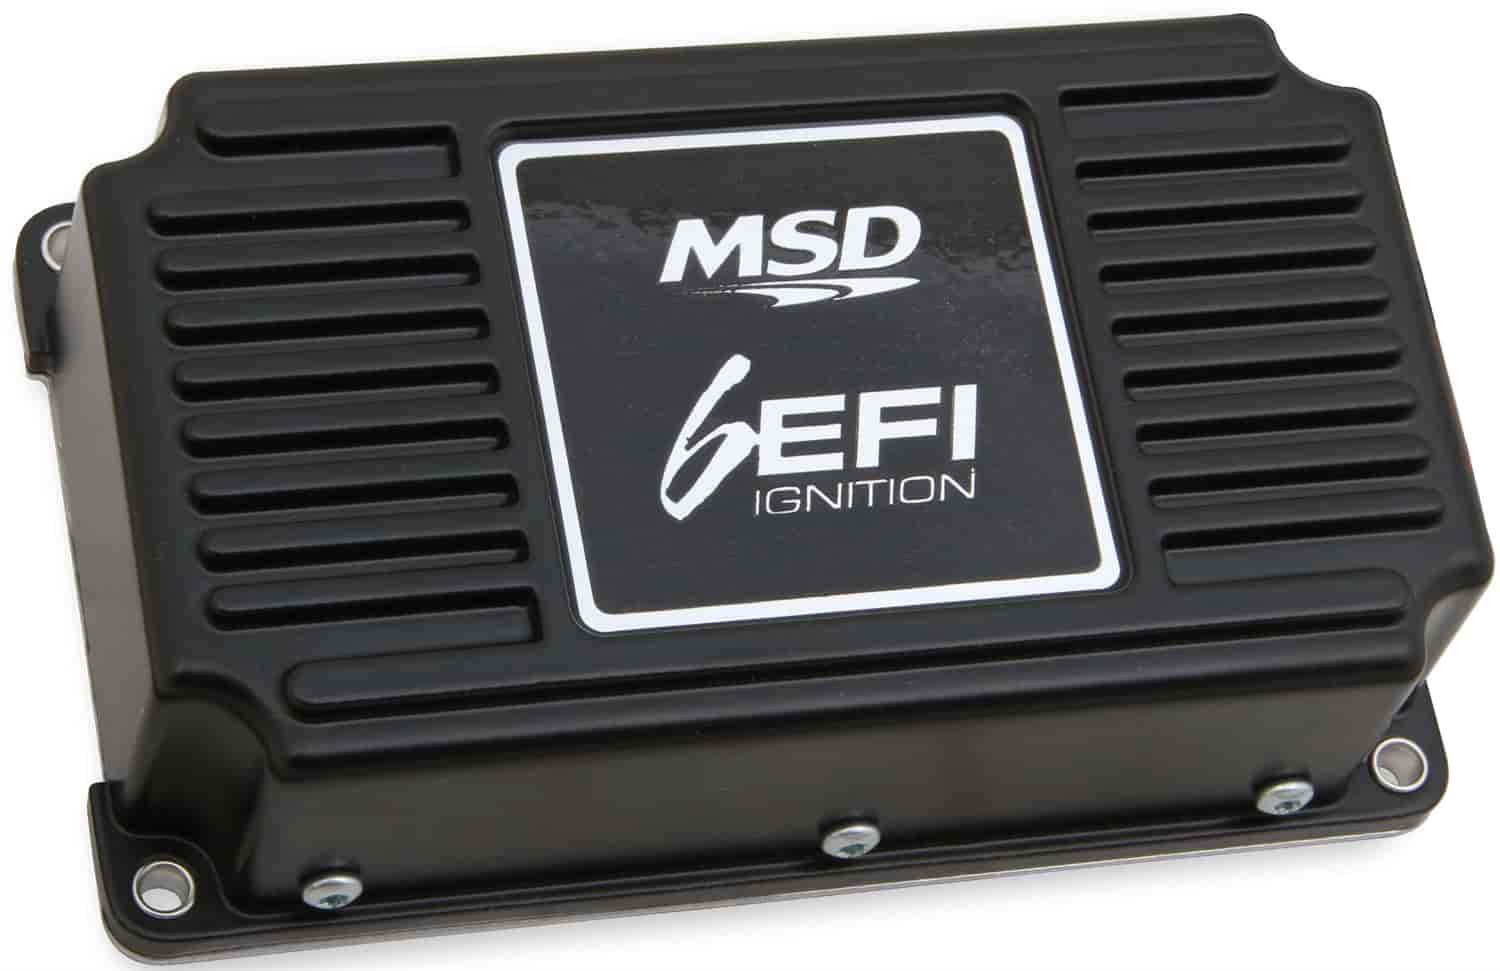 MSD Ignition 6EFI Ignition Control Universal on